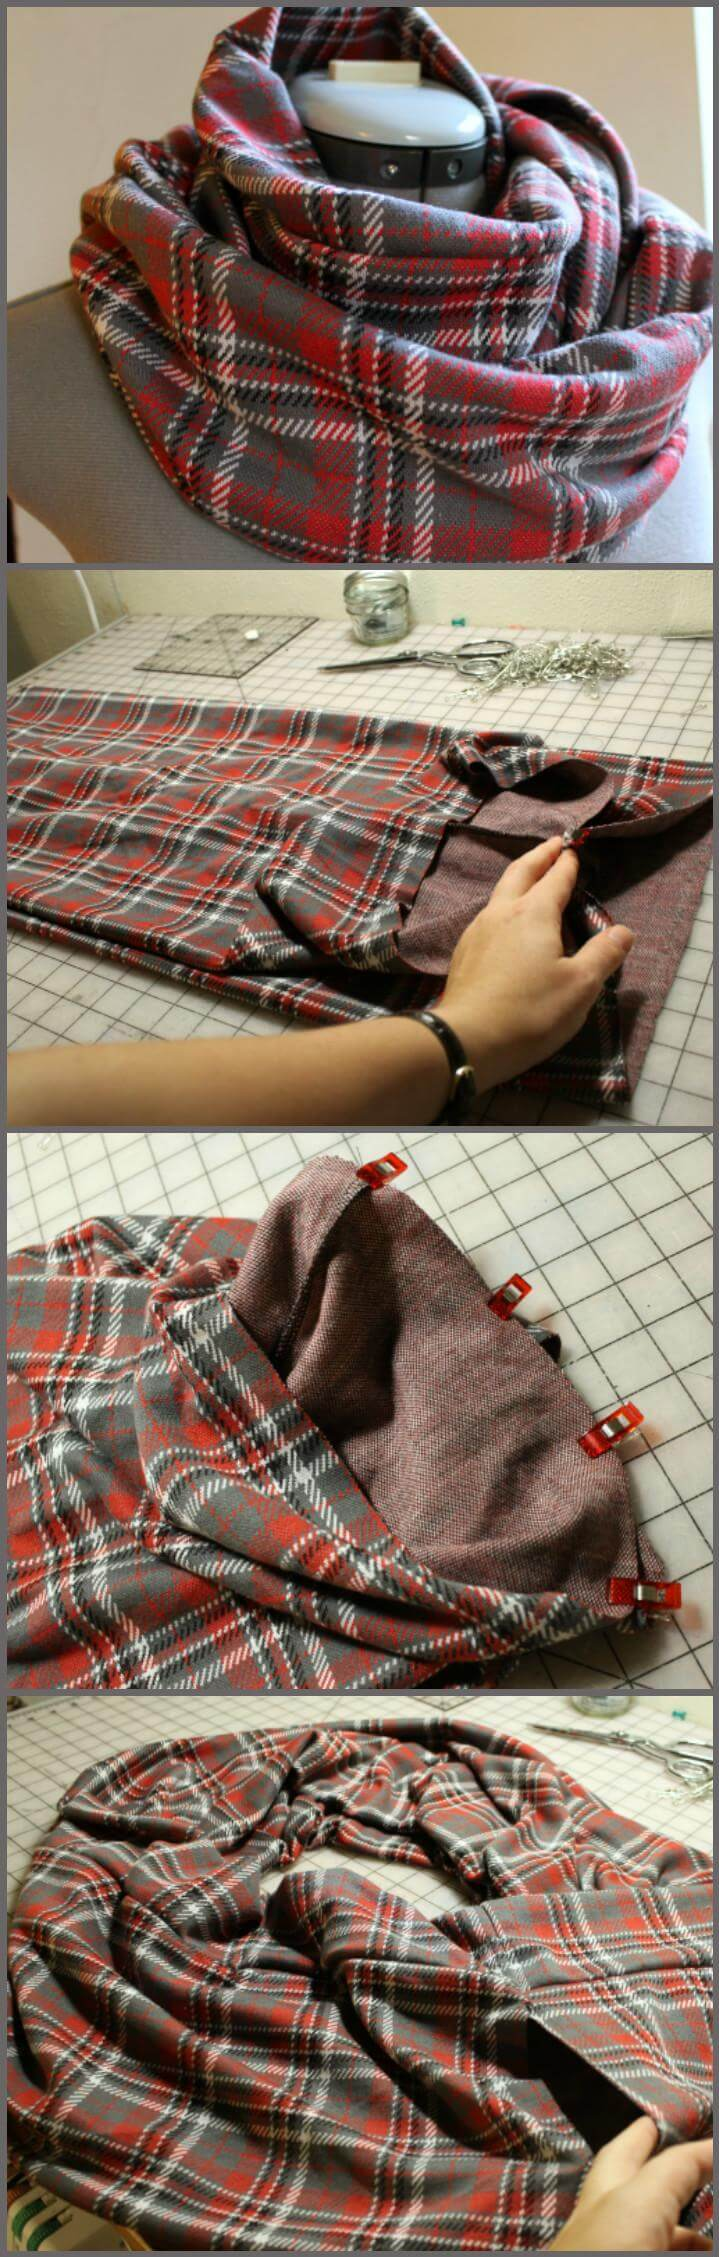 easy sew infinity scarf project and tutorial